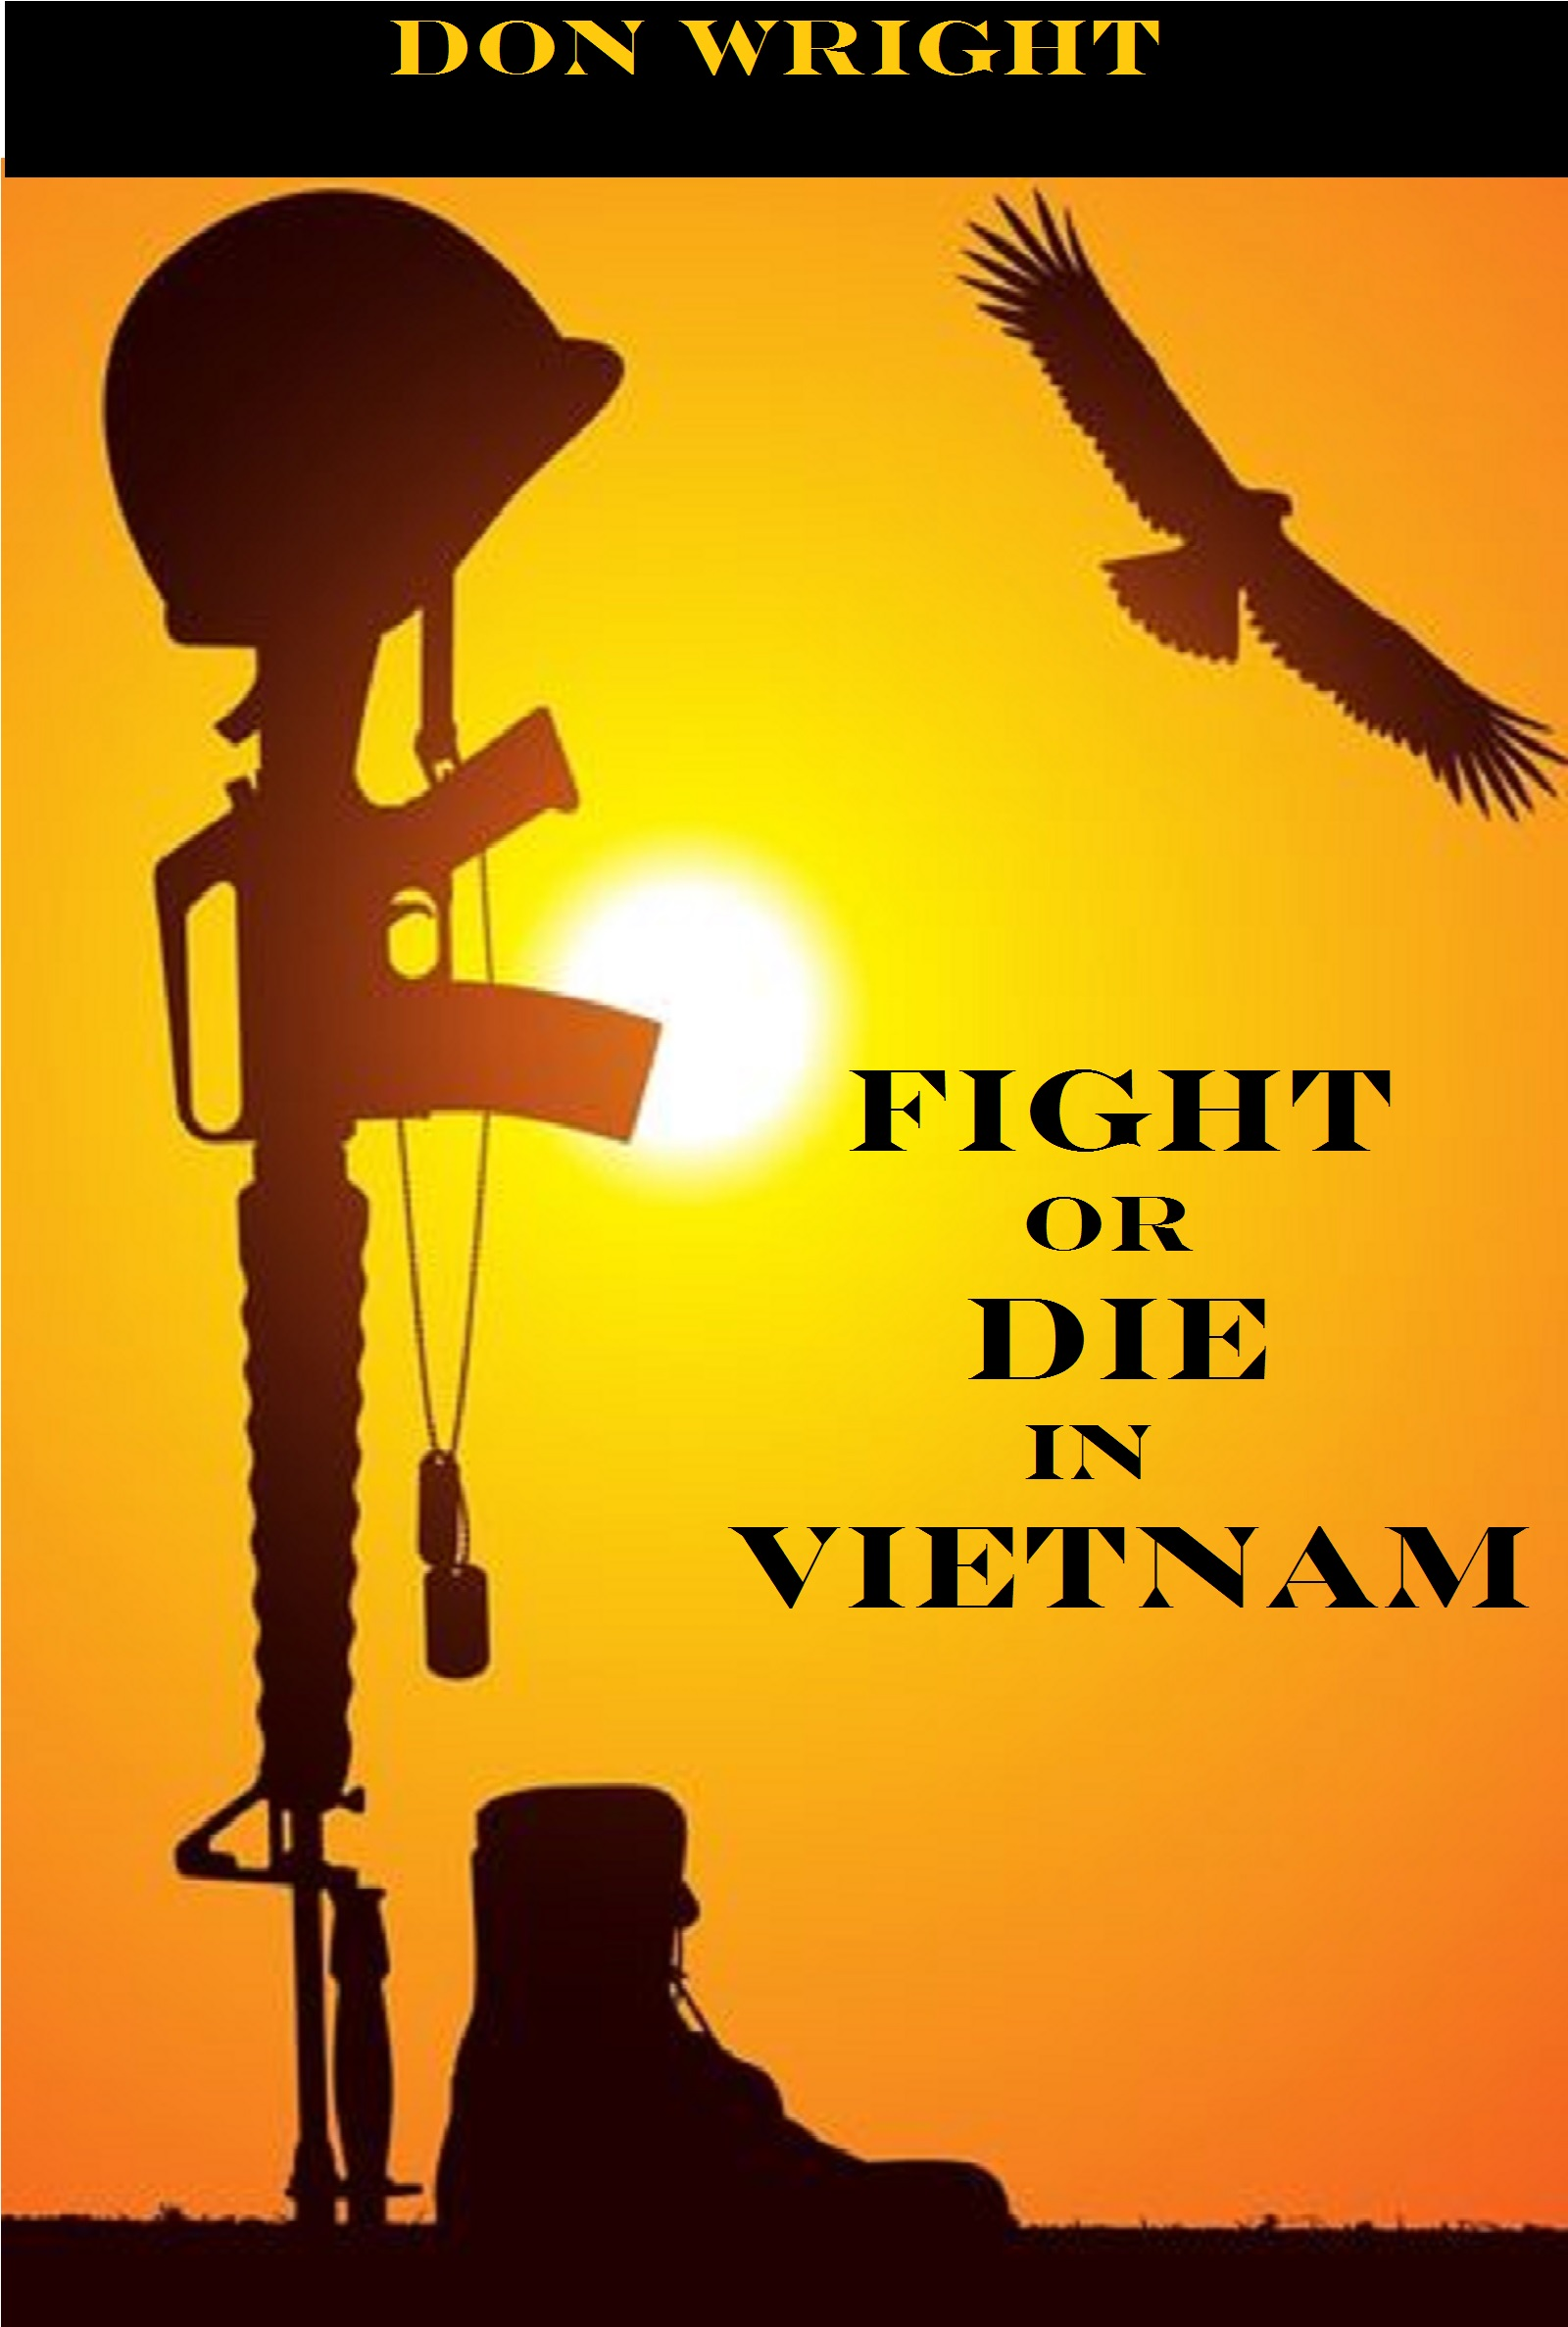 fight or die it is a After long working day louise knew from her girlfriend that her boyfriend was kidnapped without thinking she rushes on his searches she doesn't know yet that the whole mafia is against her, which she should fight on her own.